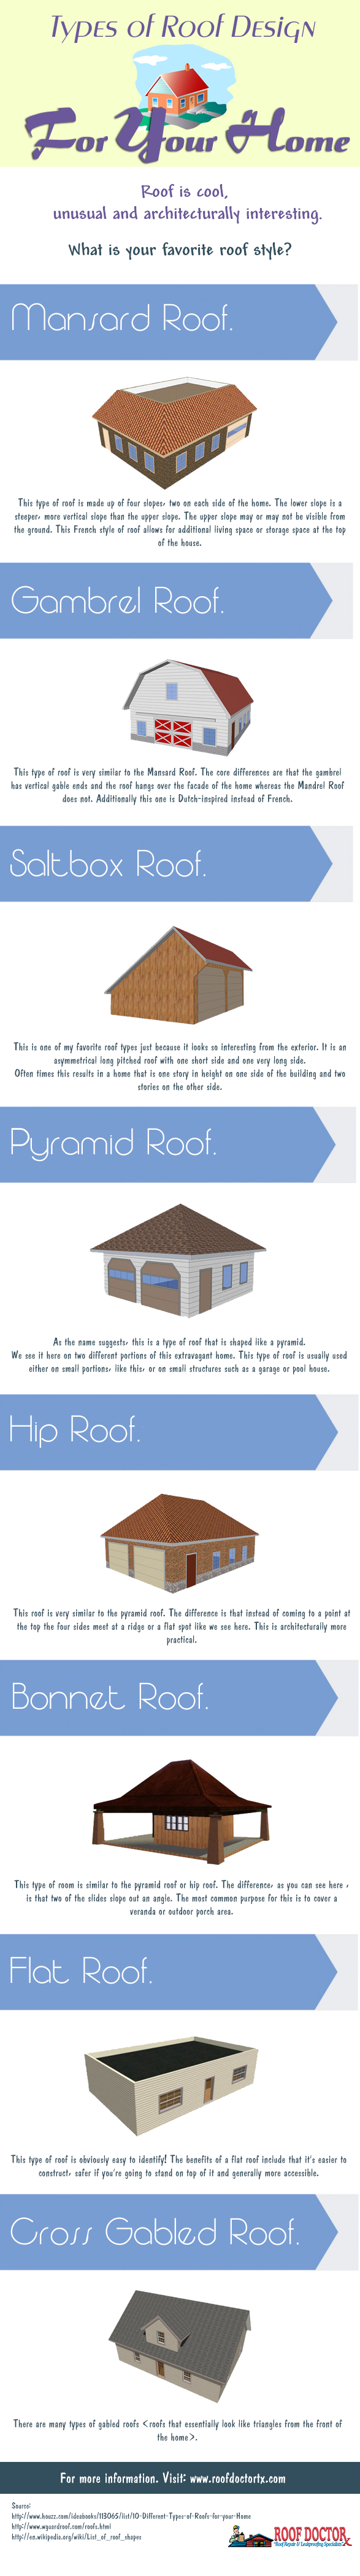 Types Of Roof Design For Your Home Infographic Roof